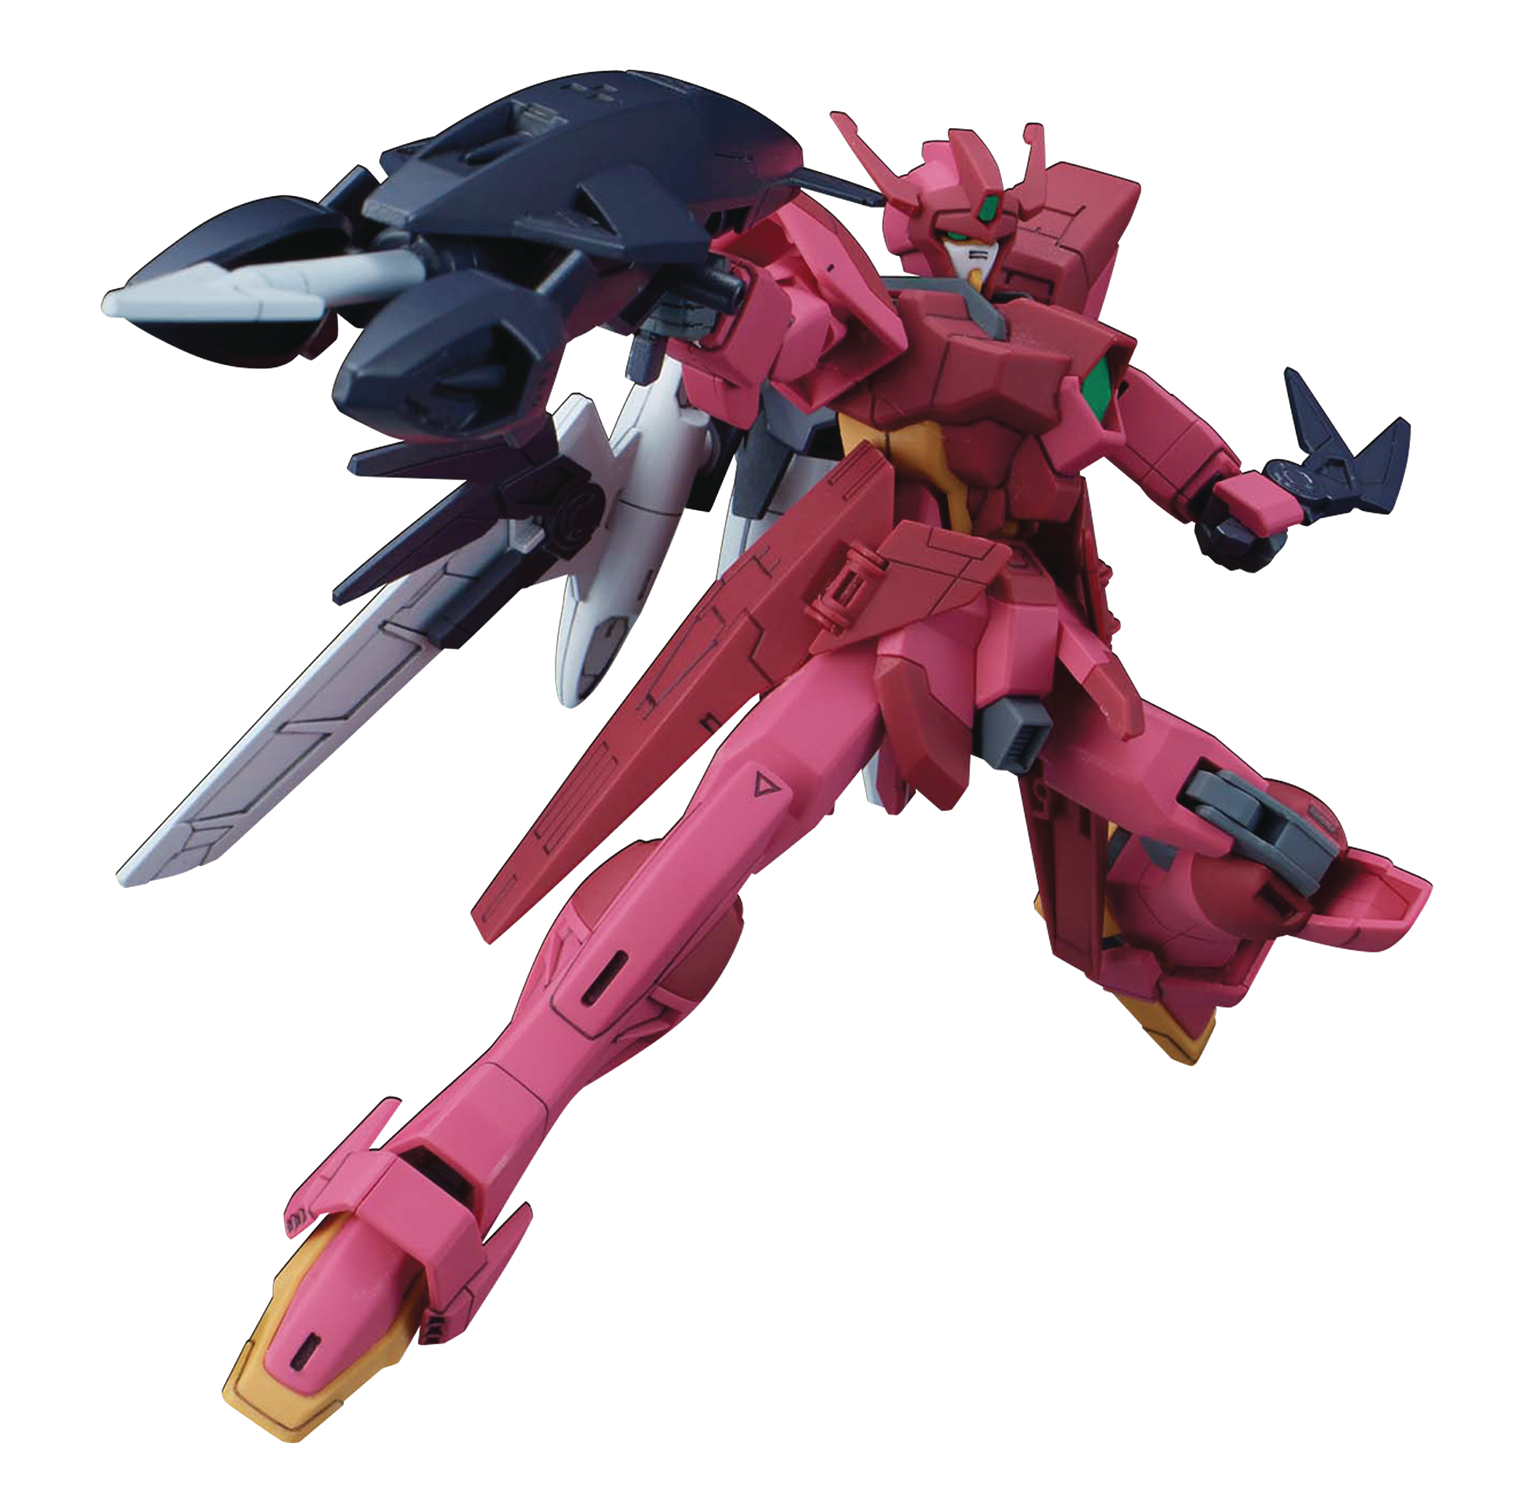 GUNDAM BUILD DIVERS PROTAGONISTS NEW WEAPONS 1/144 MDL KIT (